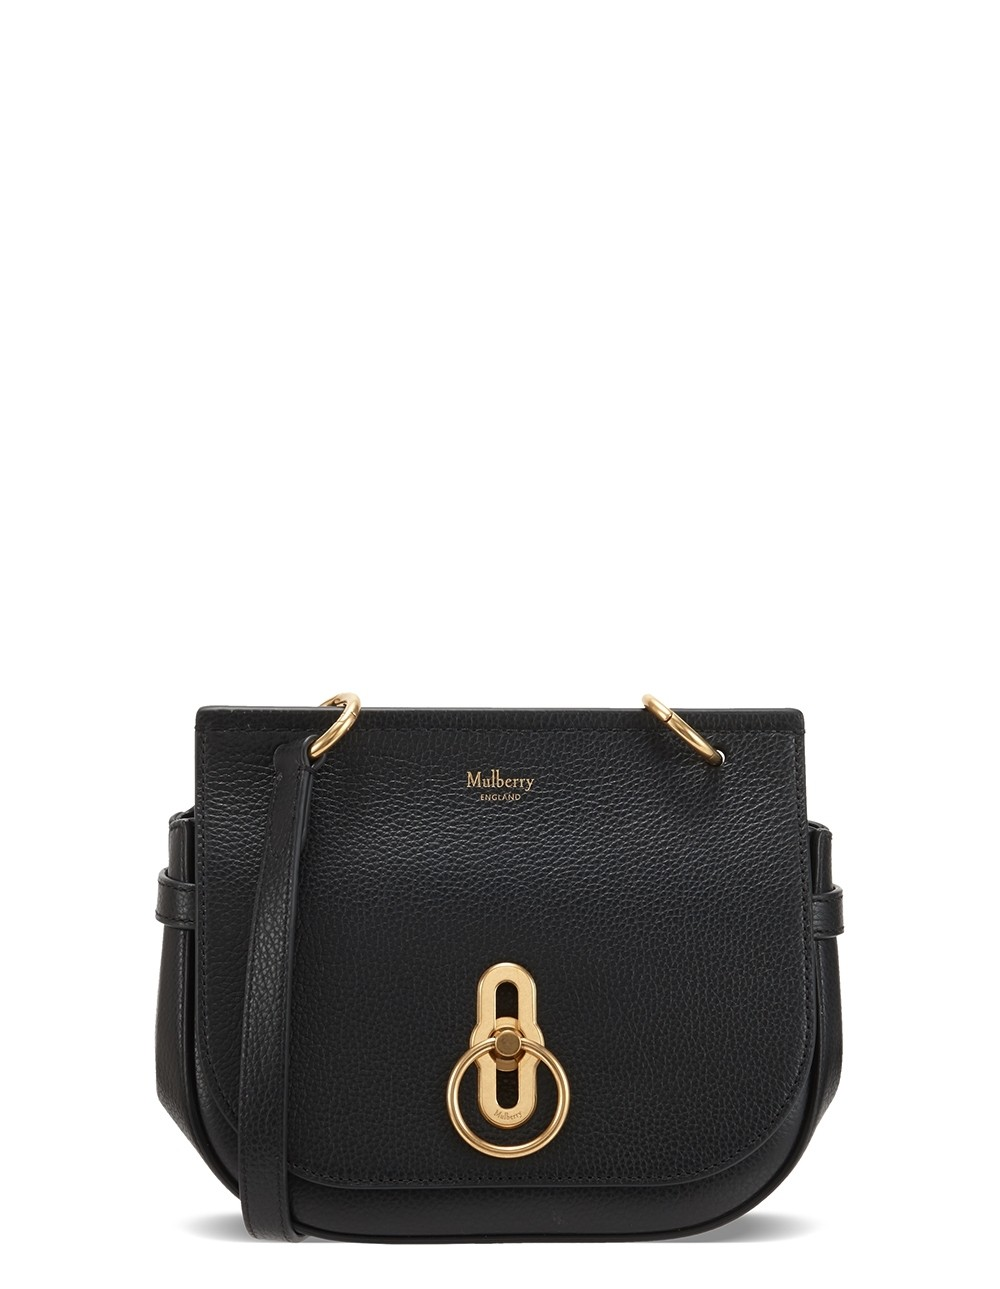 Mulberry - Small Amberley Satchel In Small Classic Grain - Club 21 b91308fb7df2e